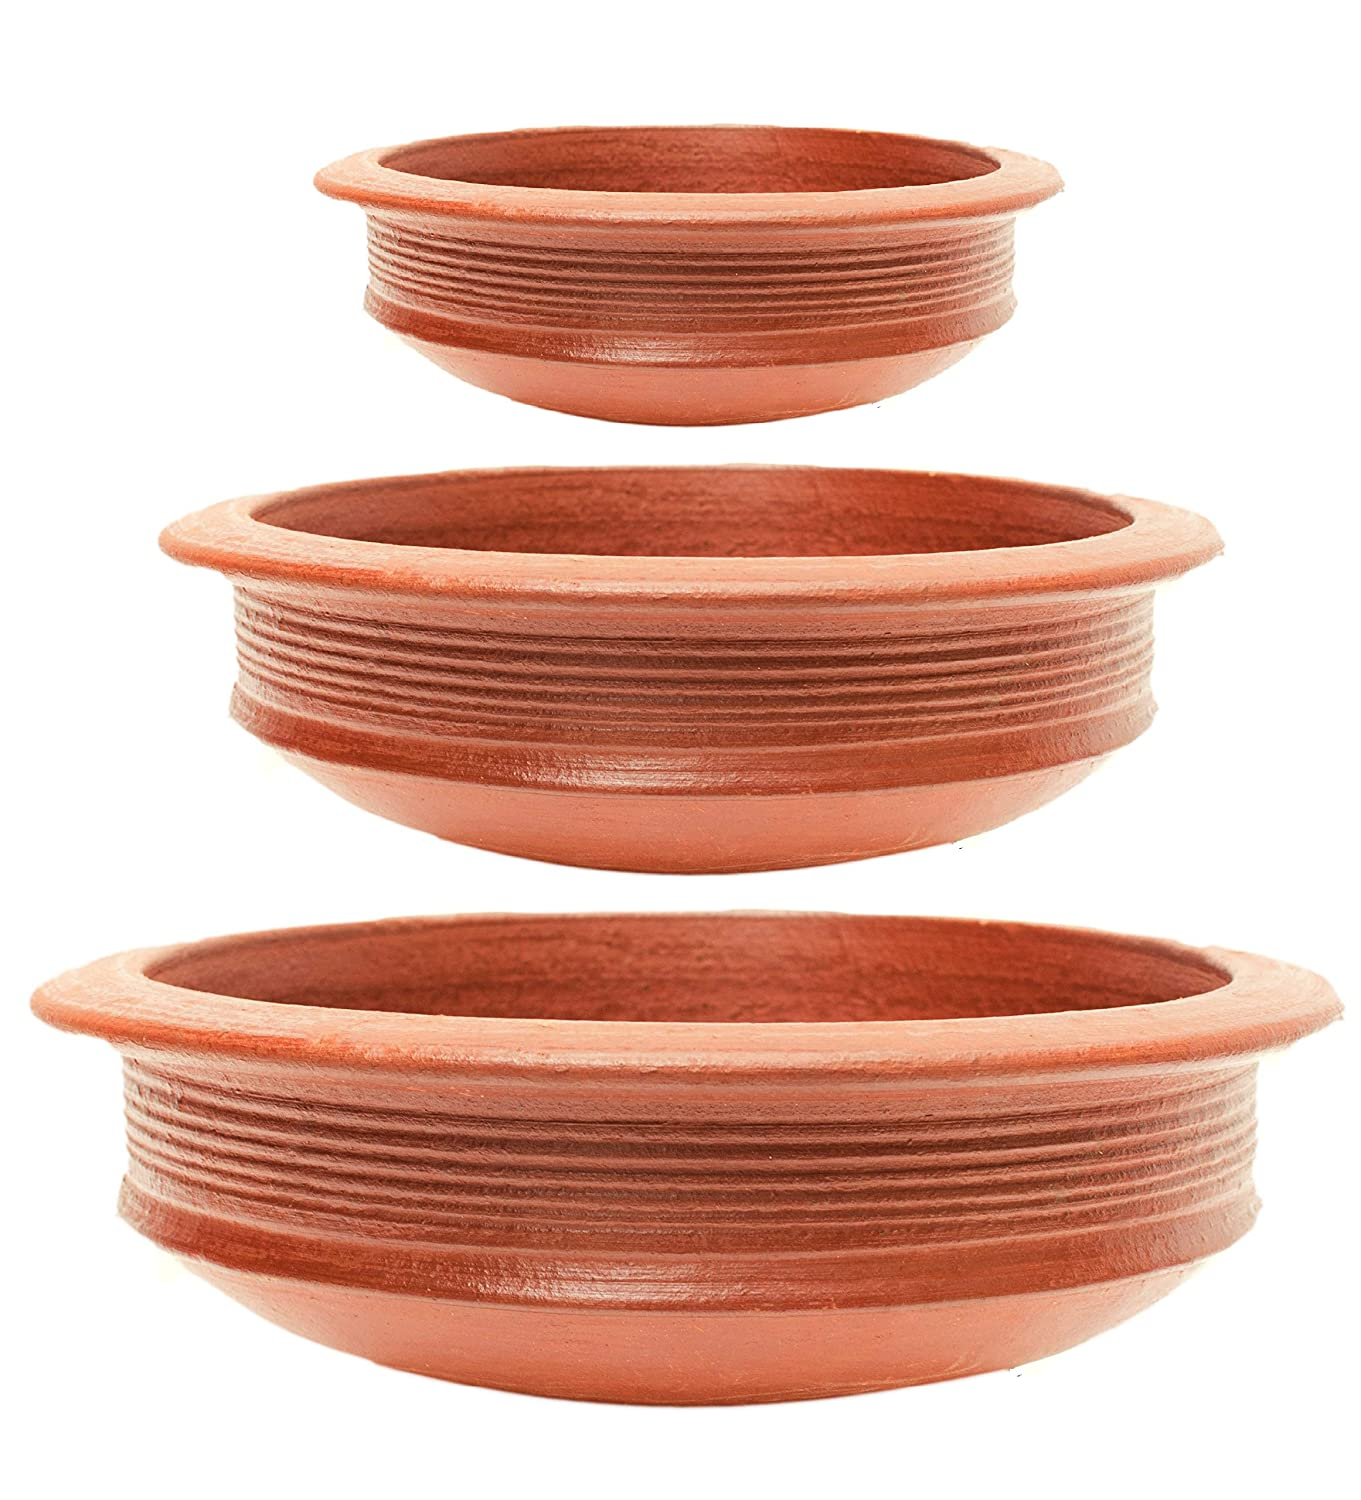 clay cooking pots buy online india Buy Craftaman India Online 2L, 2L and 2L Terracotta Clay Pots for